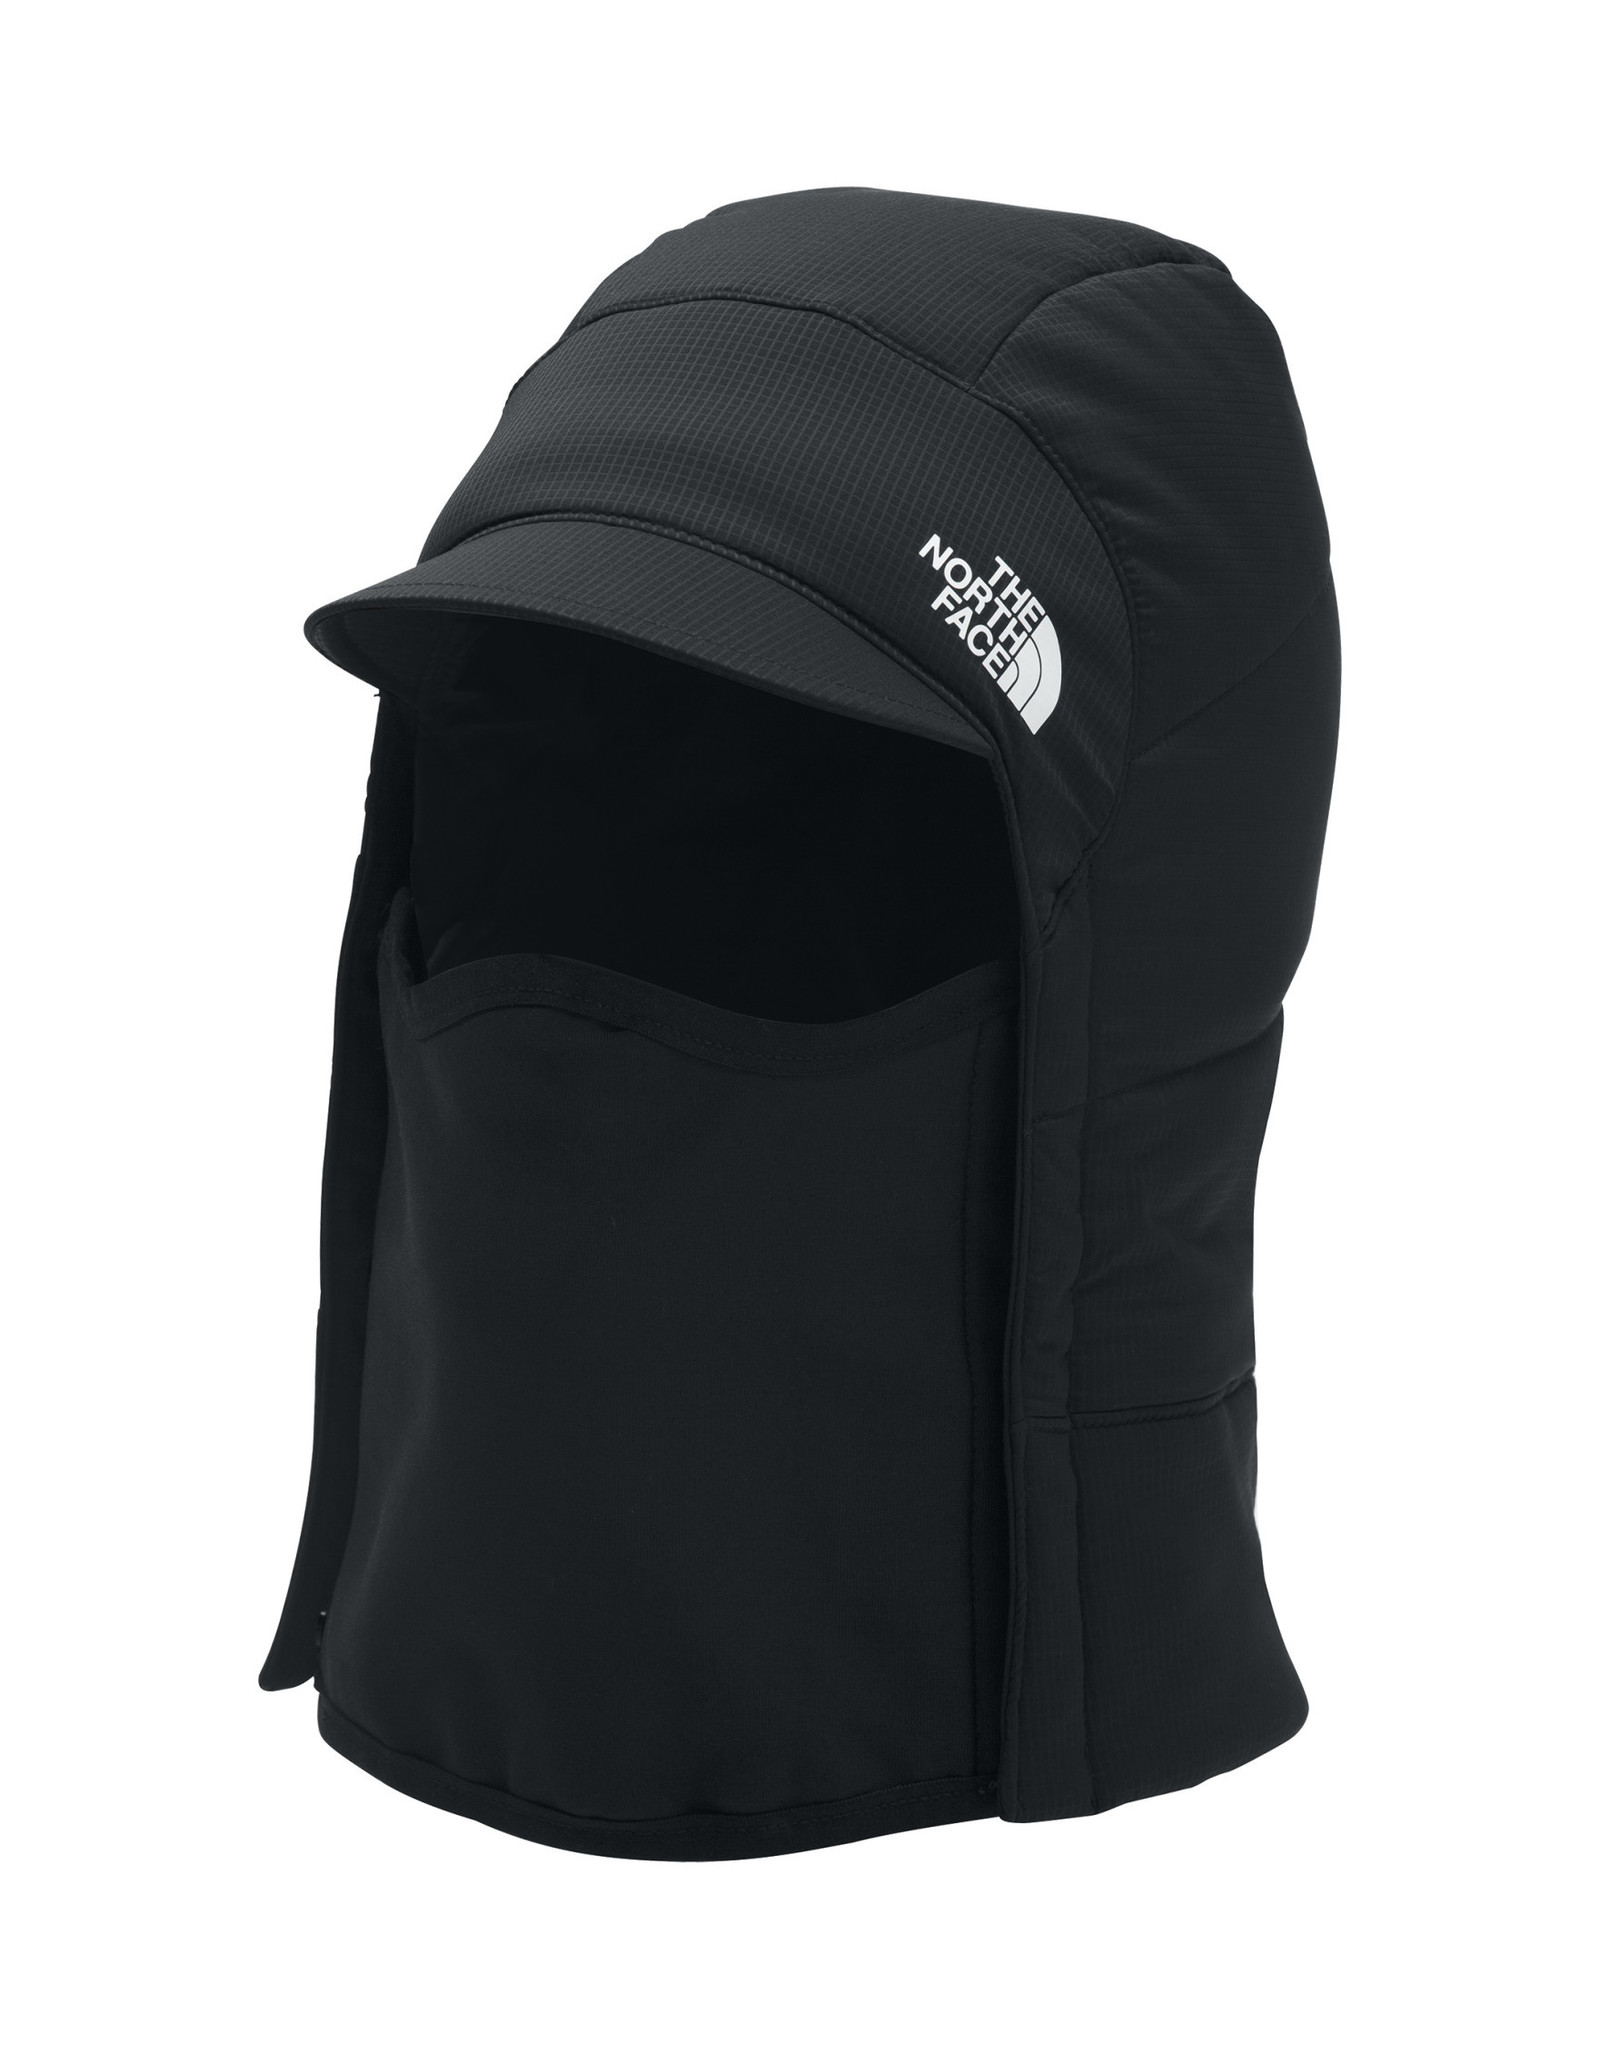 The North Face The North Face Insulated Balaclava